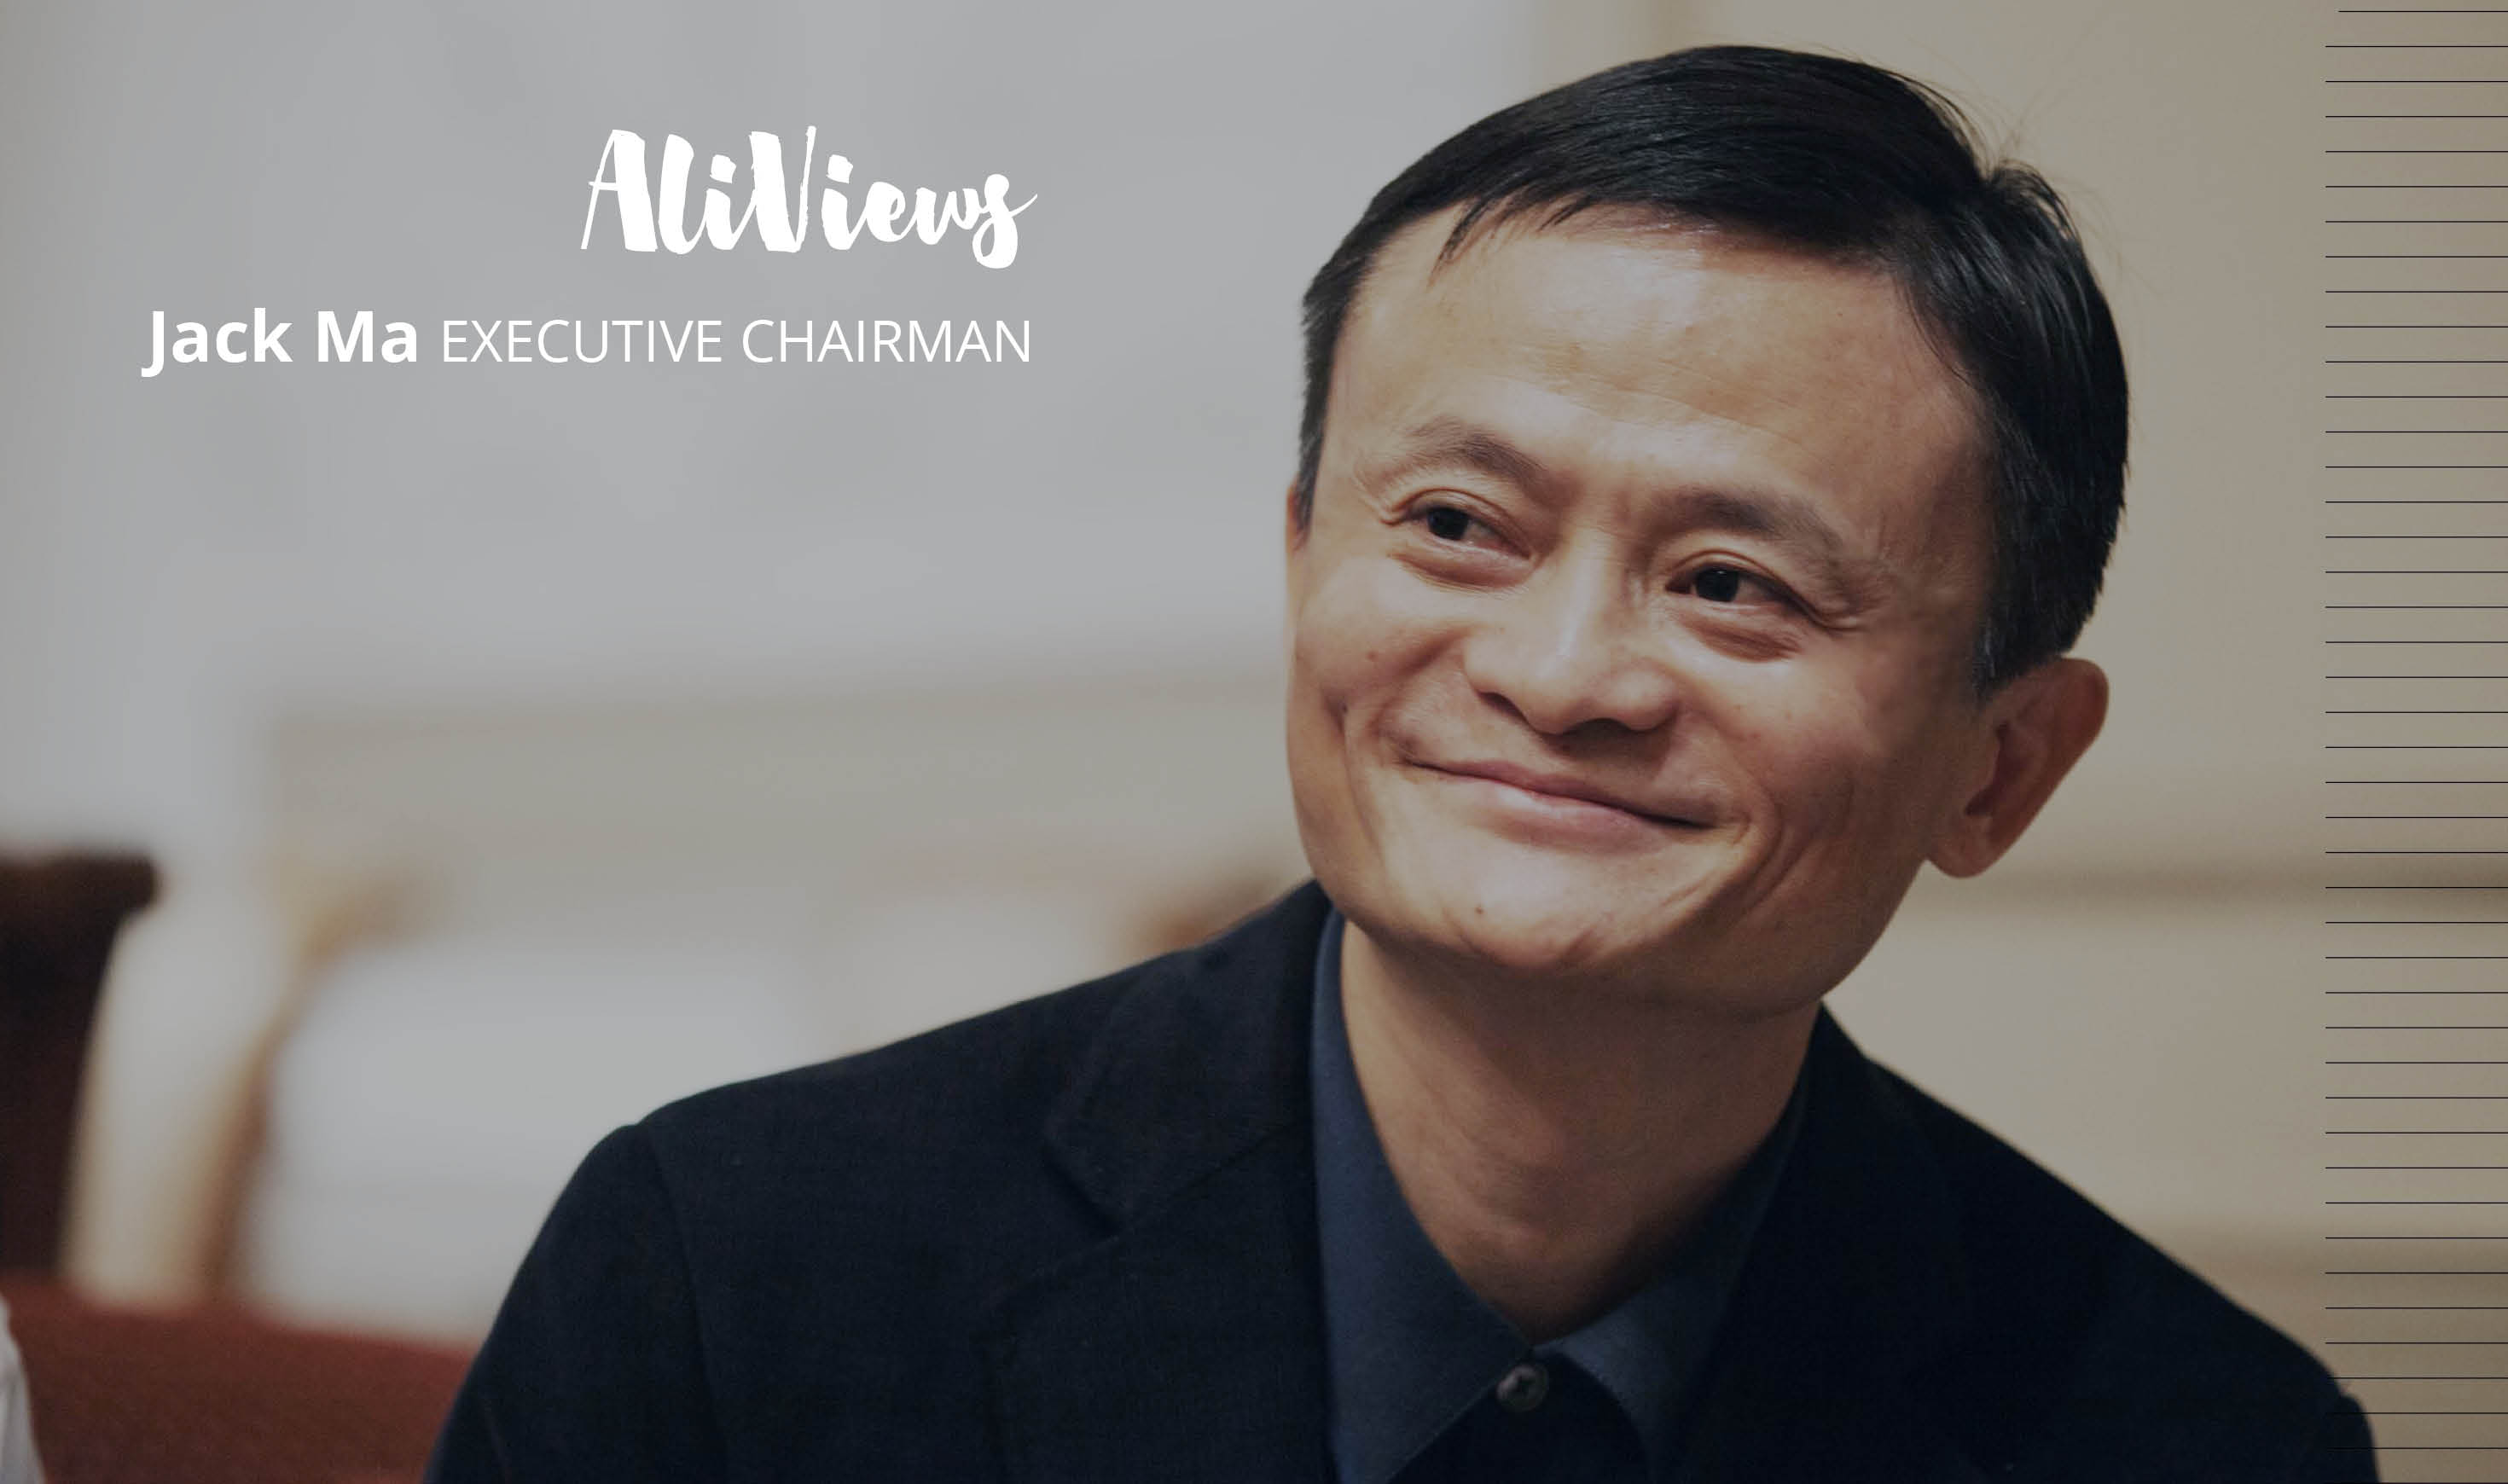 Jack Ma on Counterfeiting